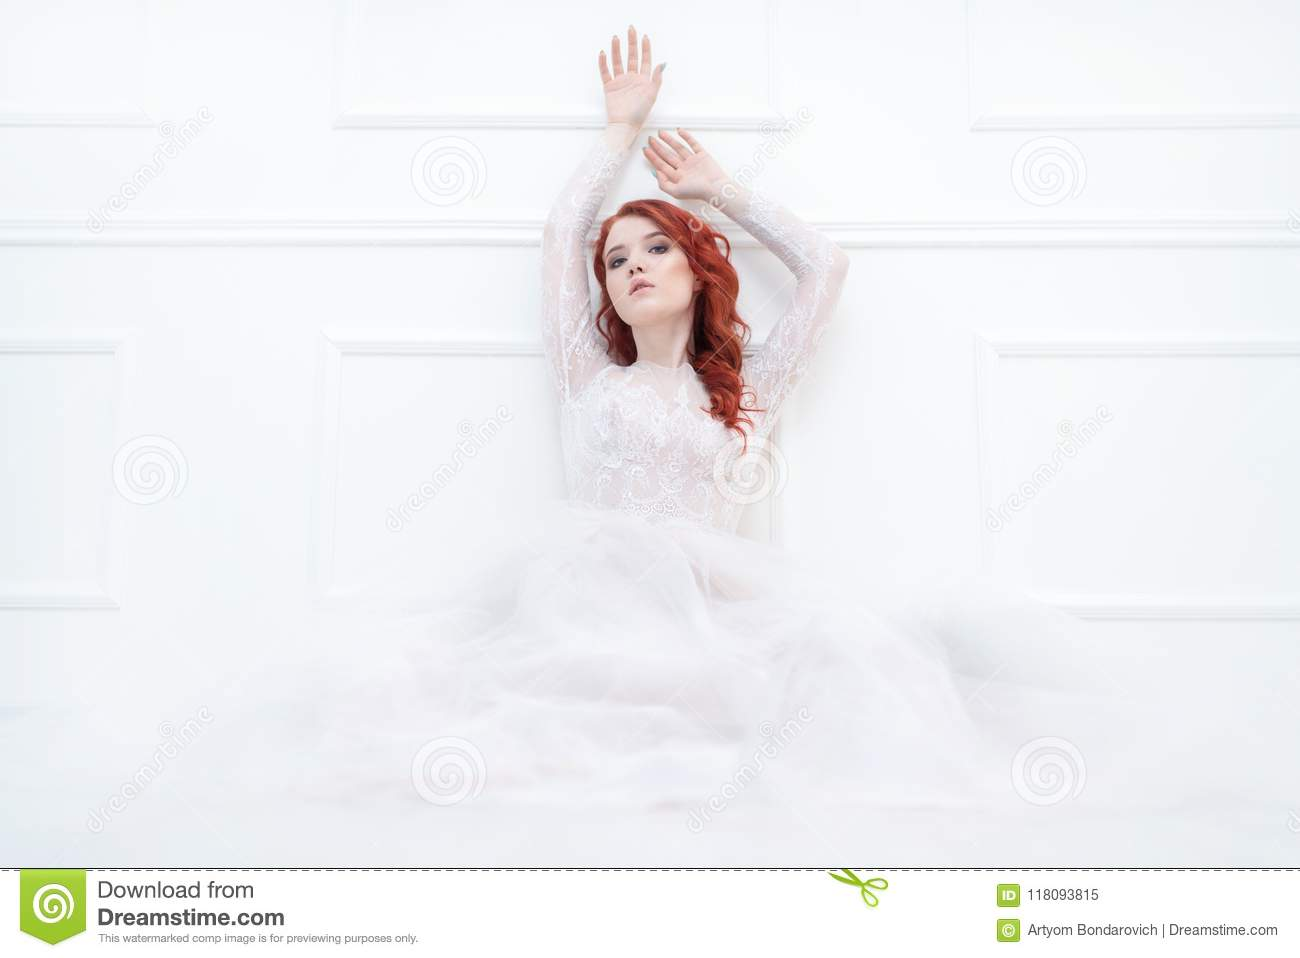 Tender retro portrait of a young beautiful dreamy redhead woman in beautiful white dress.